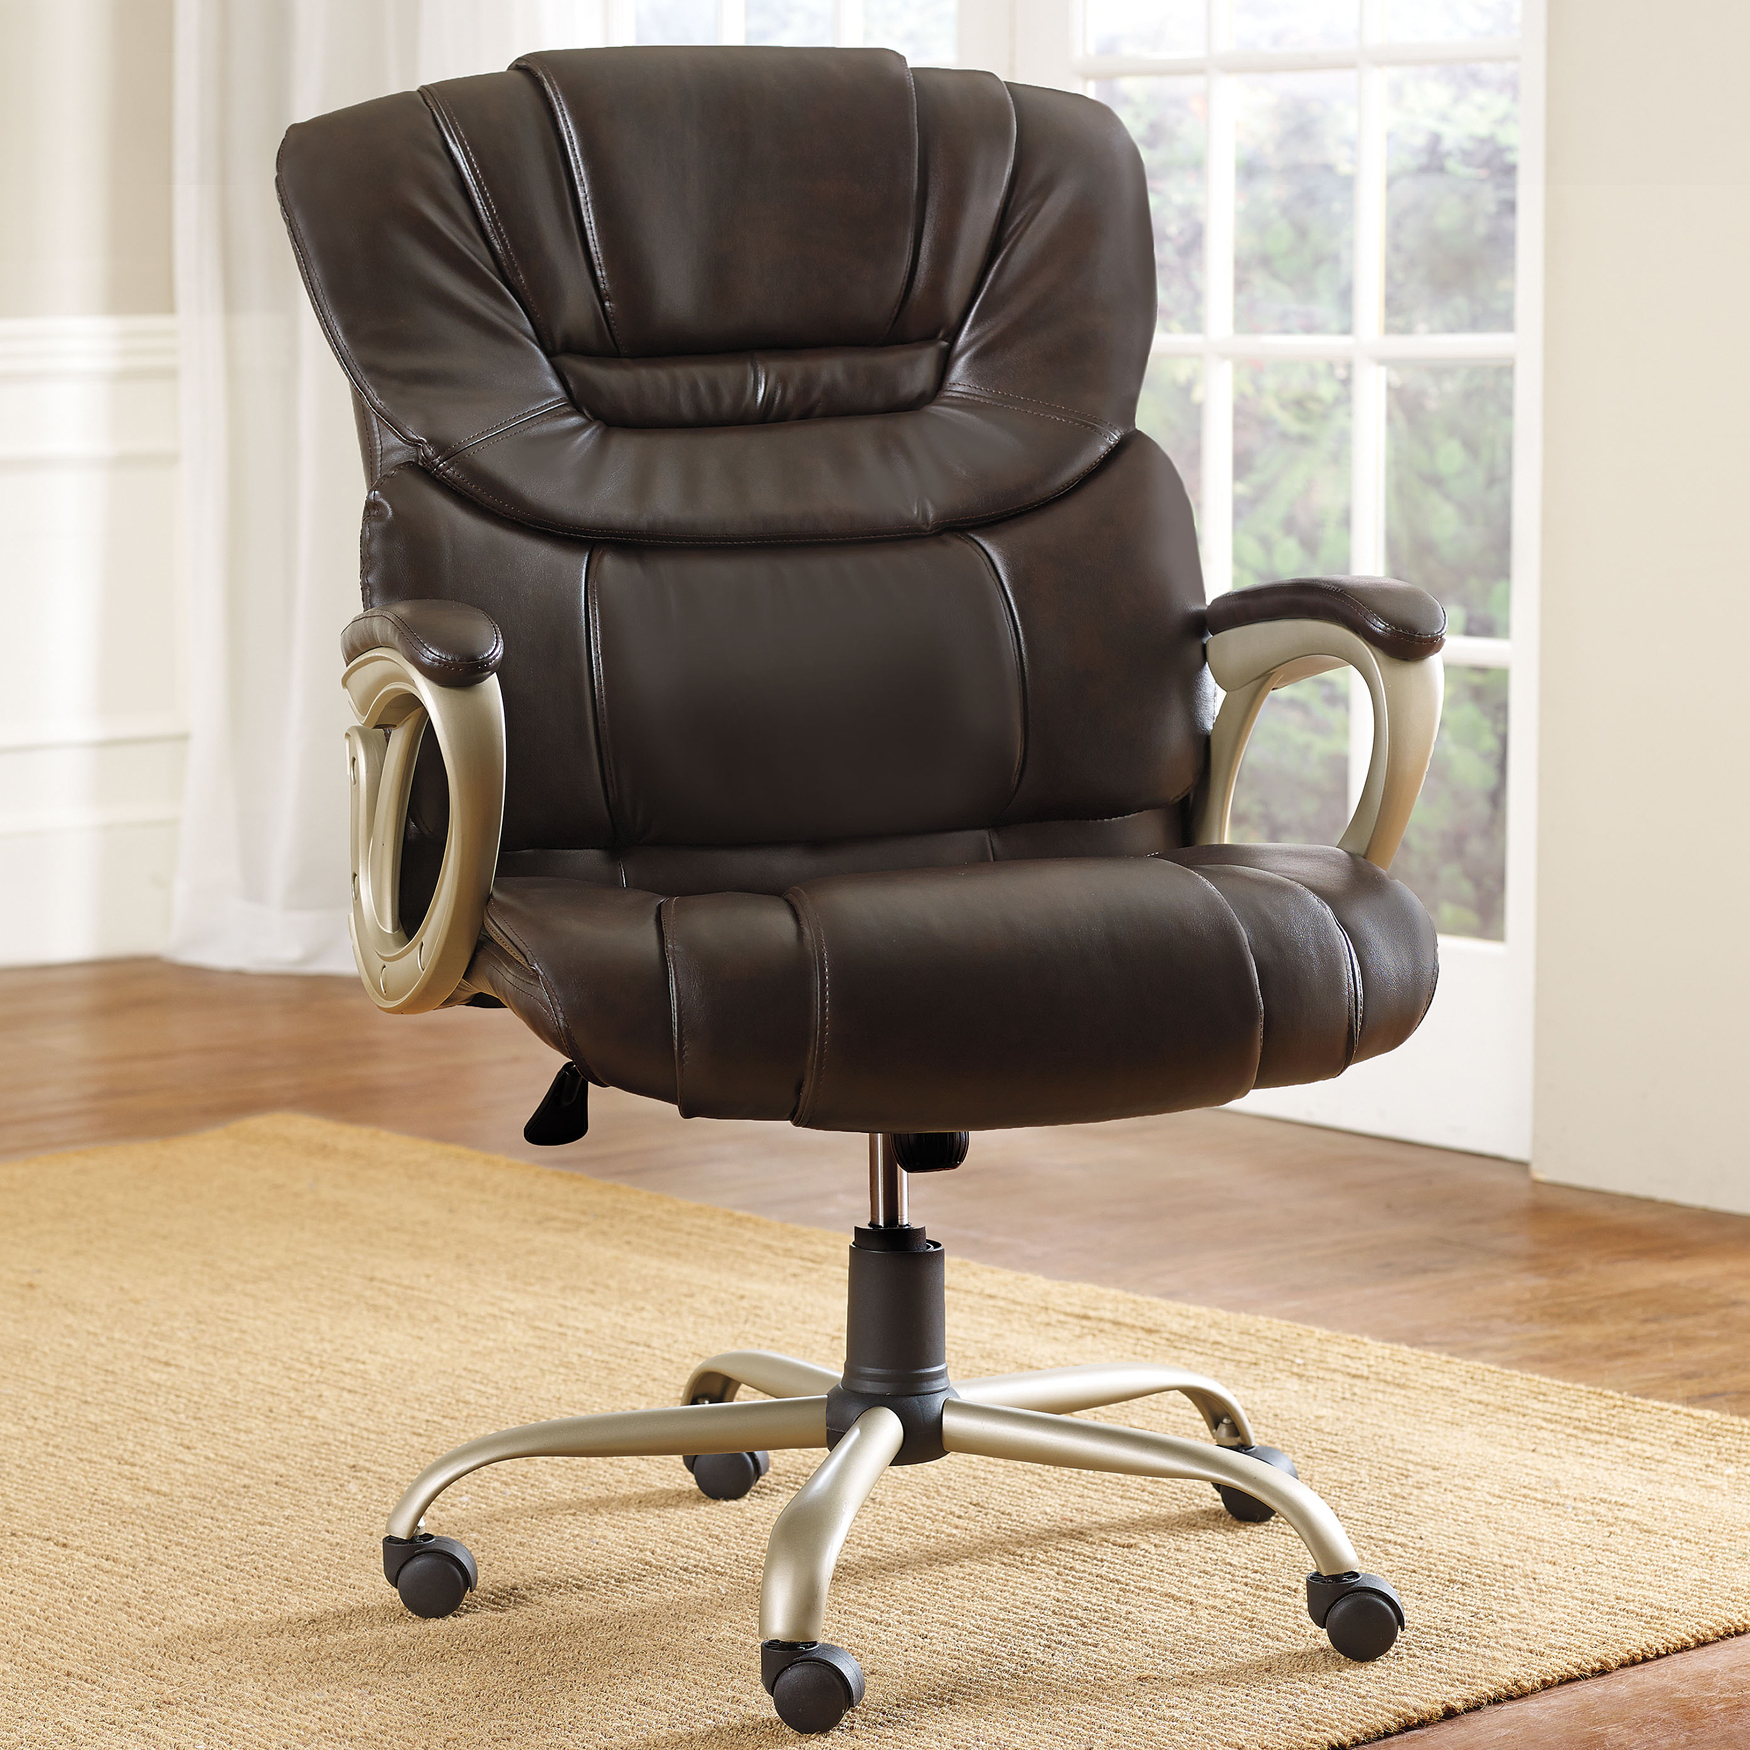 Plus Size Office Chairs Plus Size Living Collection Extra Wide Padded Executive Office Chair